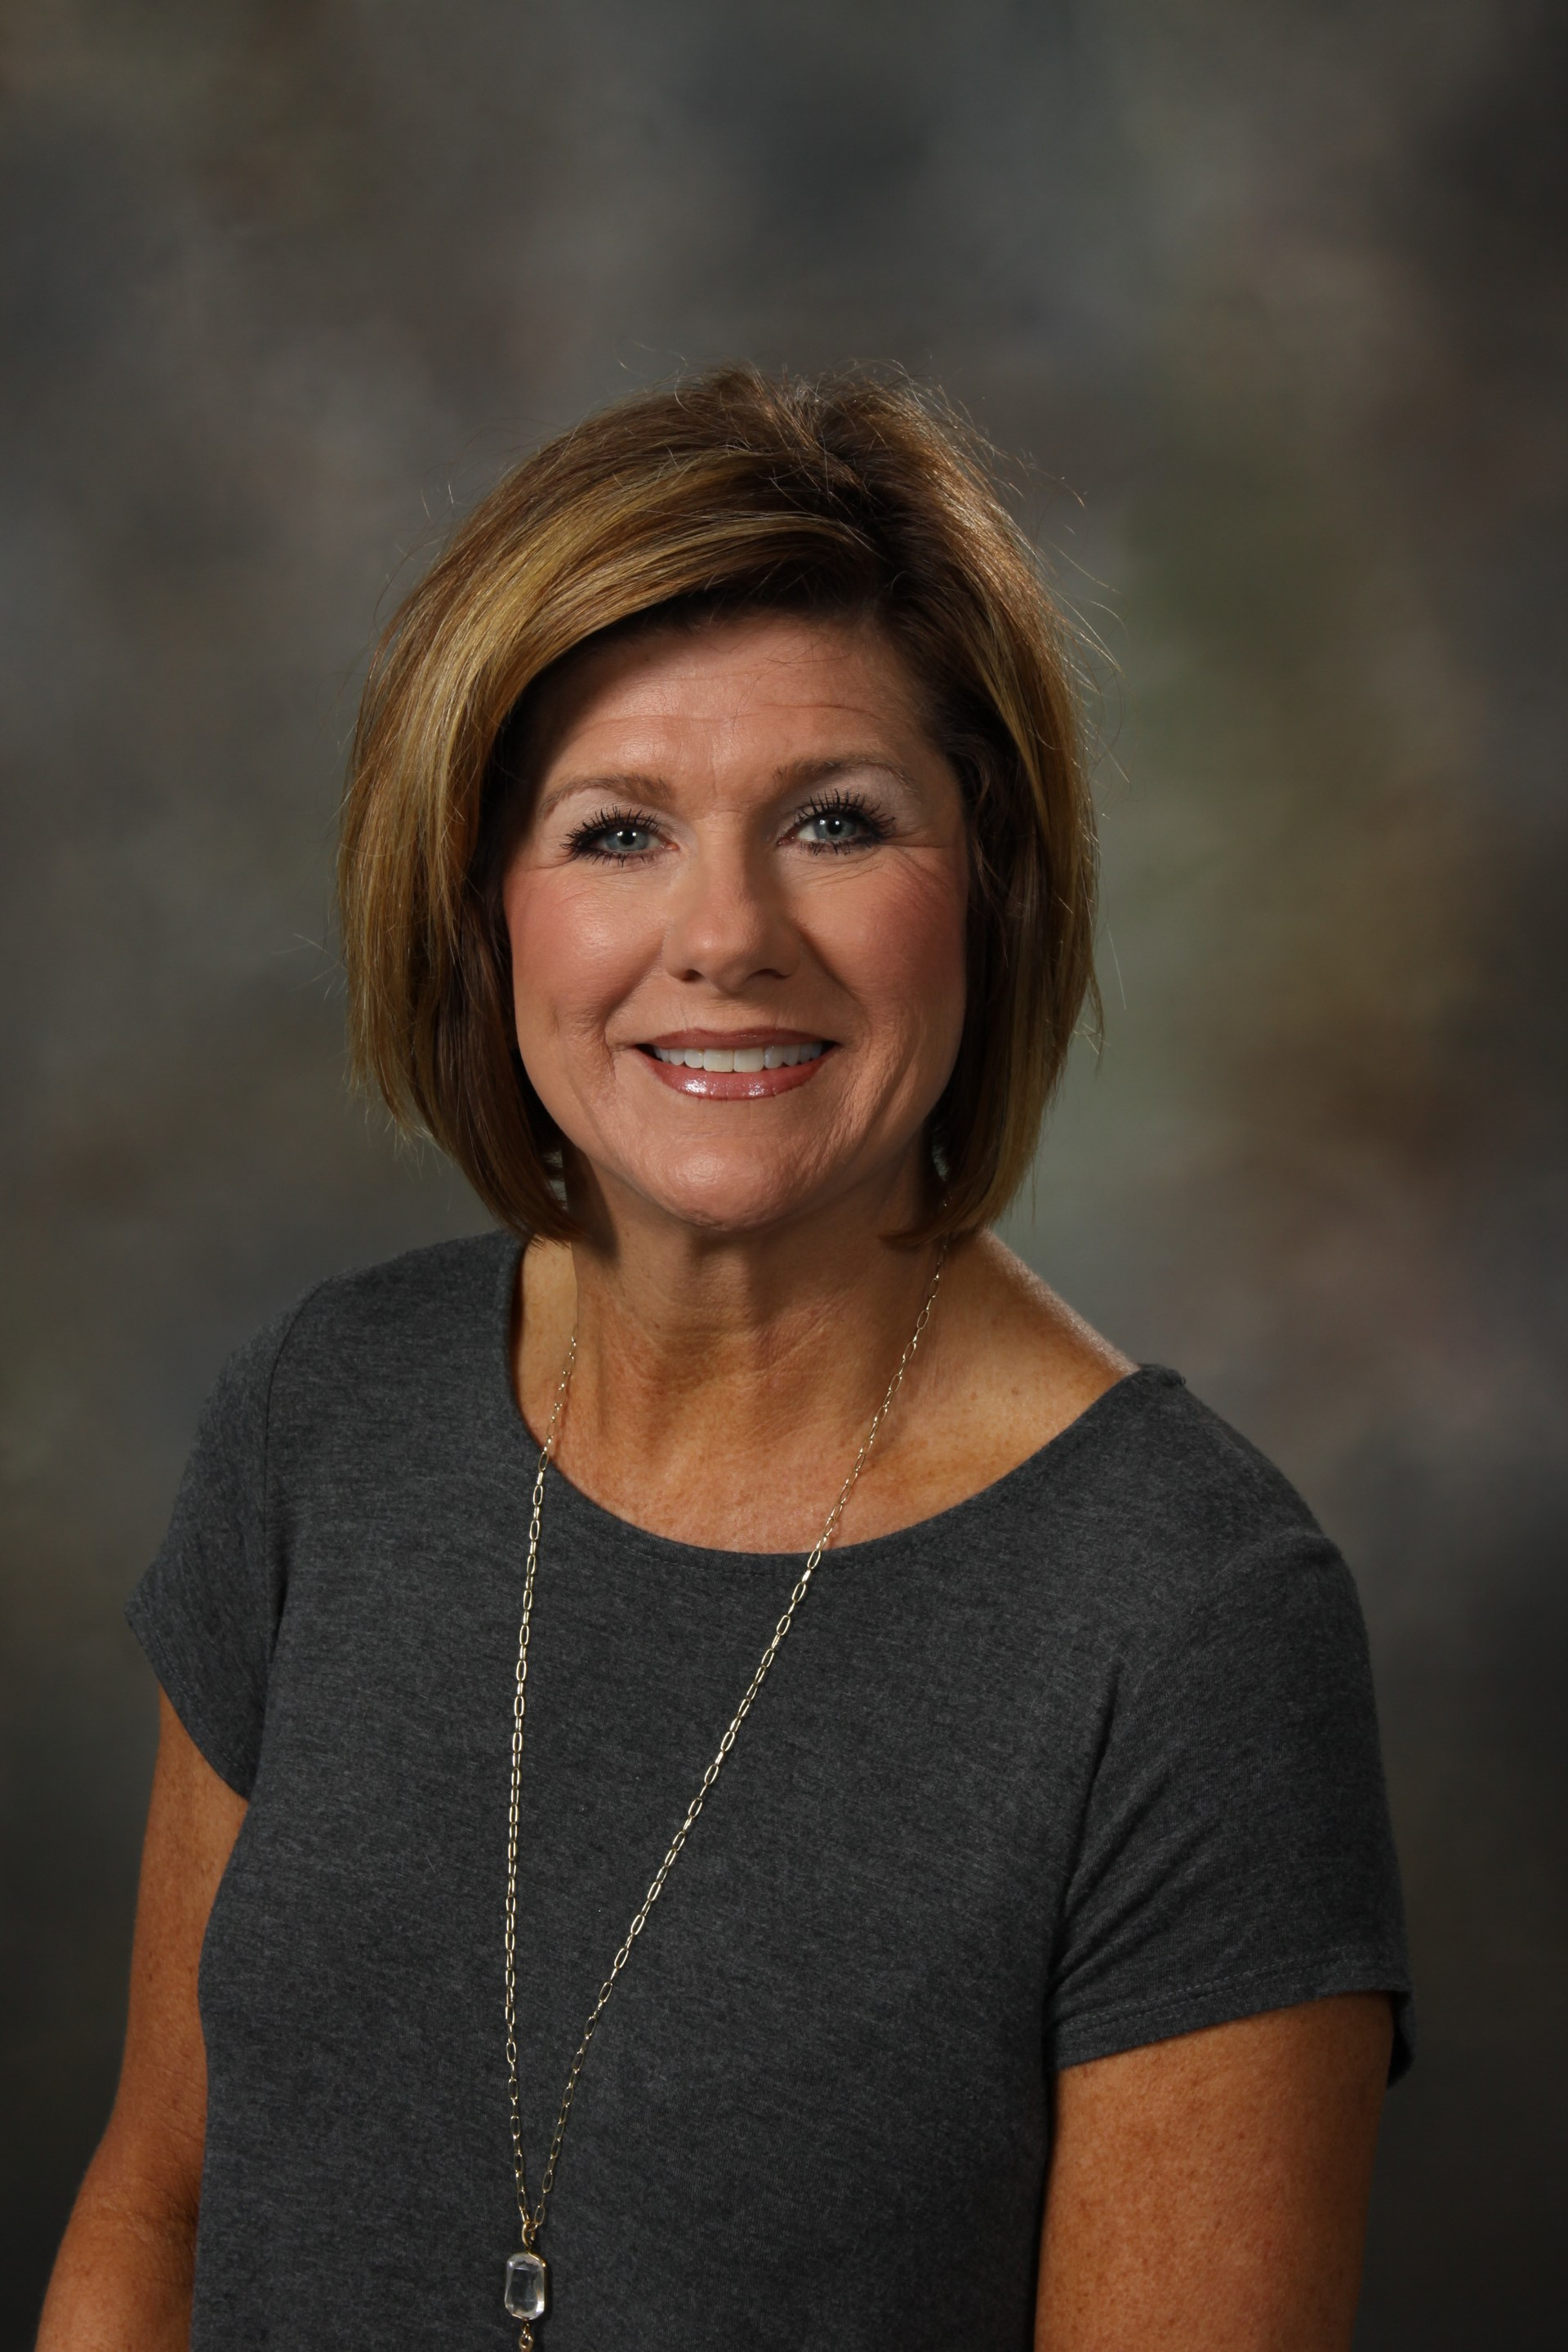 School picture of librarian, Jacque Zimmerman